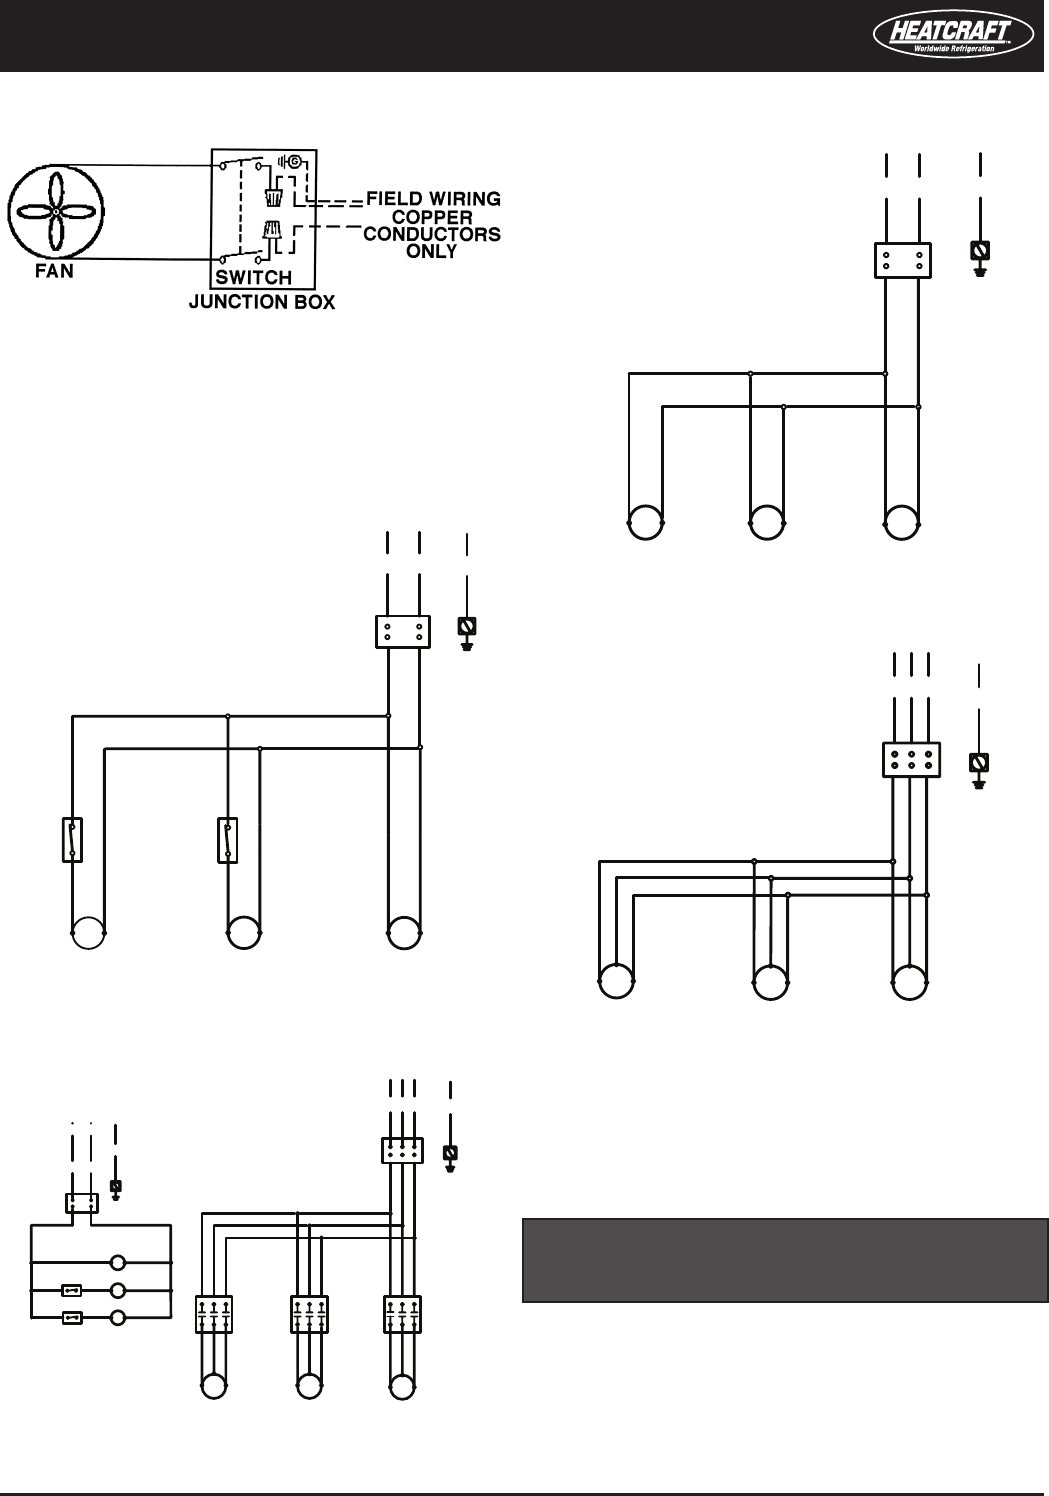 bohn evaporator wiring diagram 4 nuerasolar co \u2022